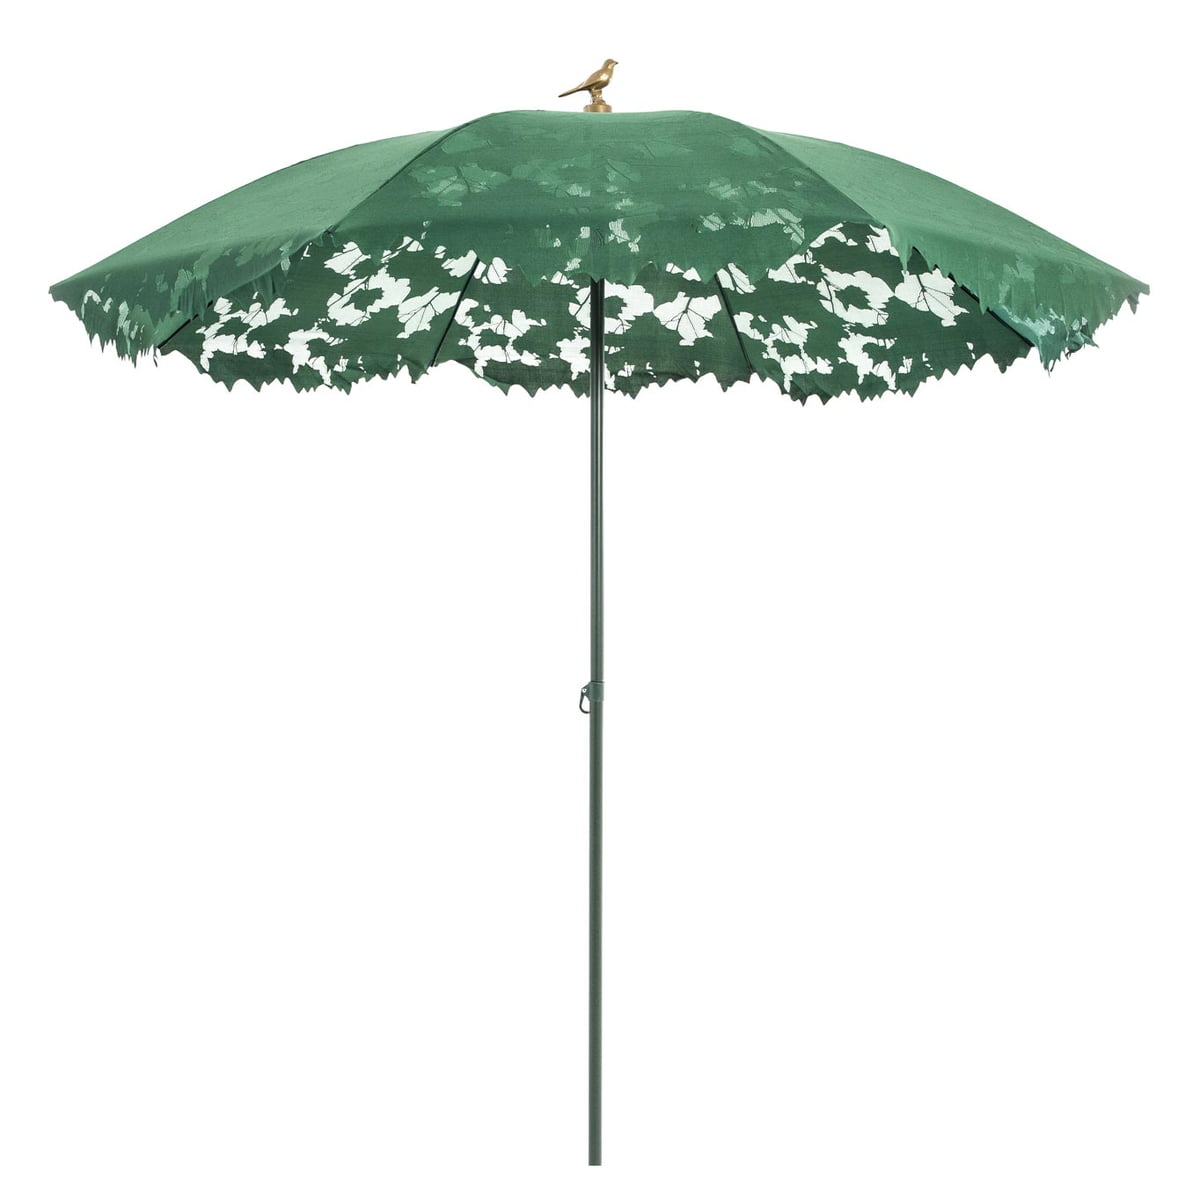 Shadylace Parasol By Droog In The Shop